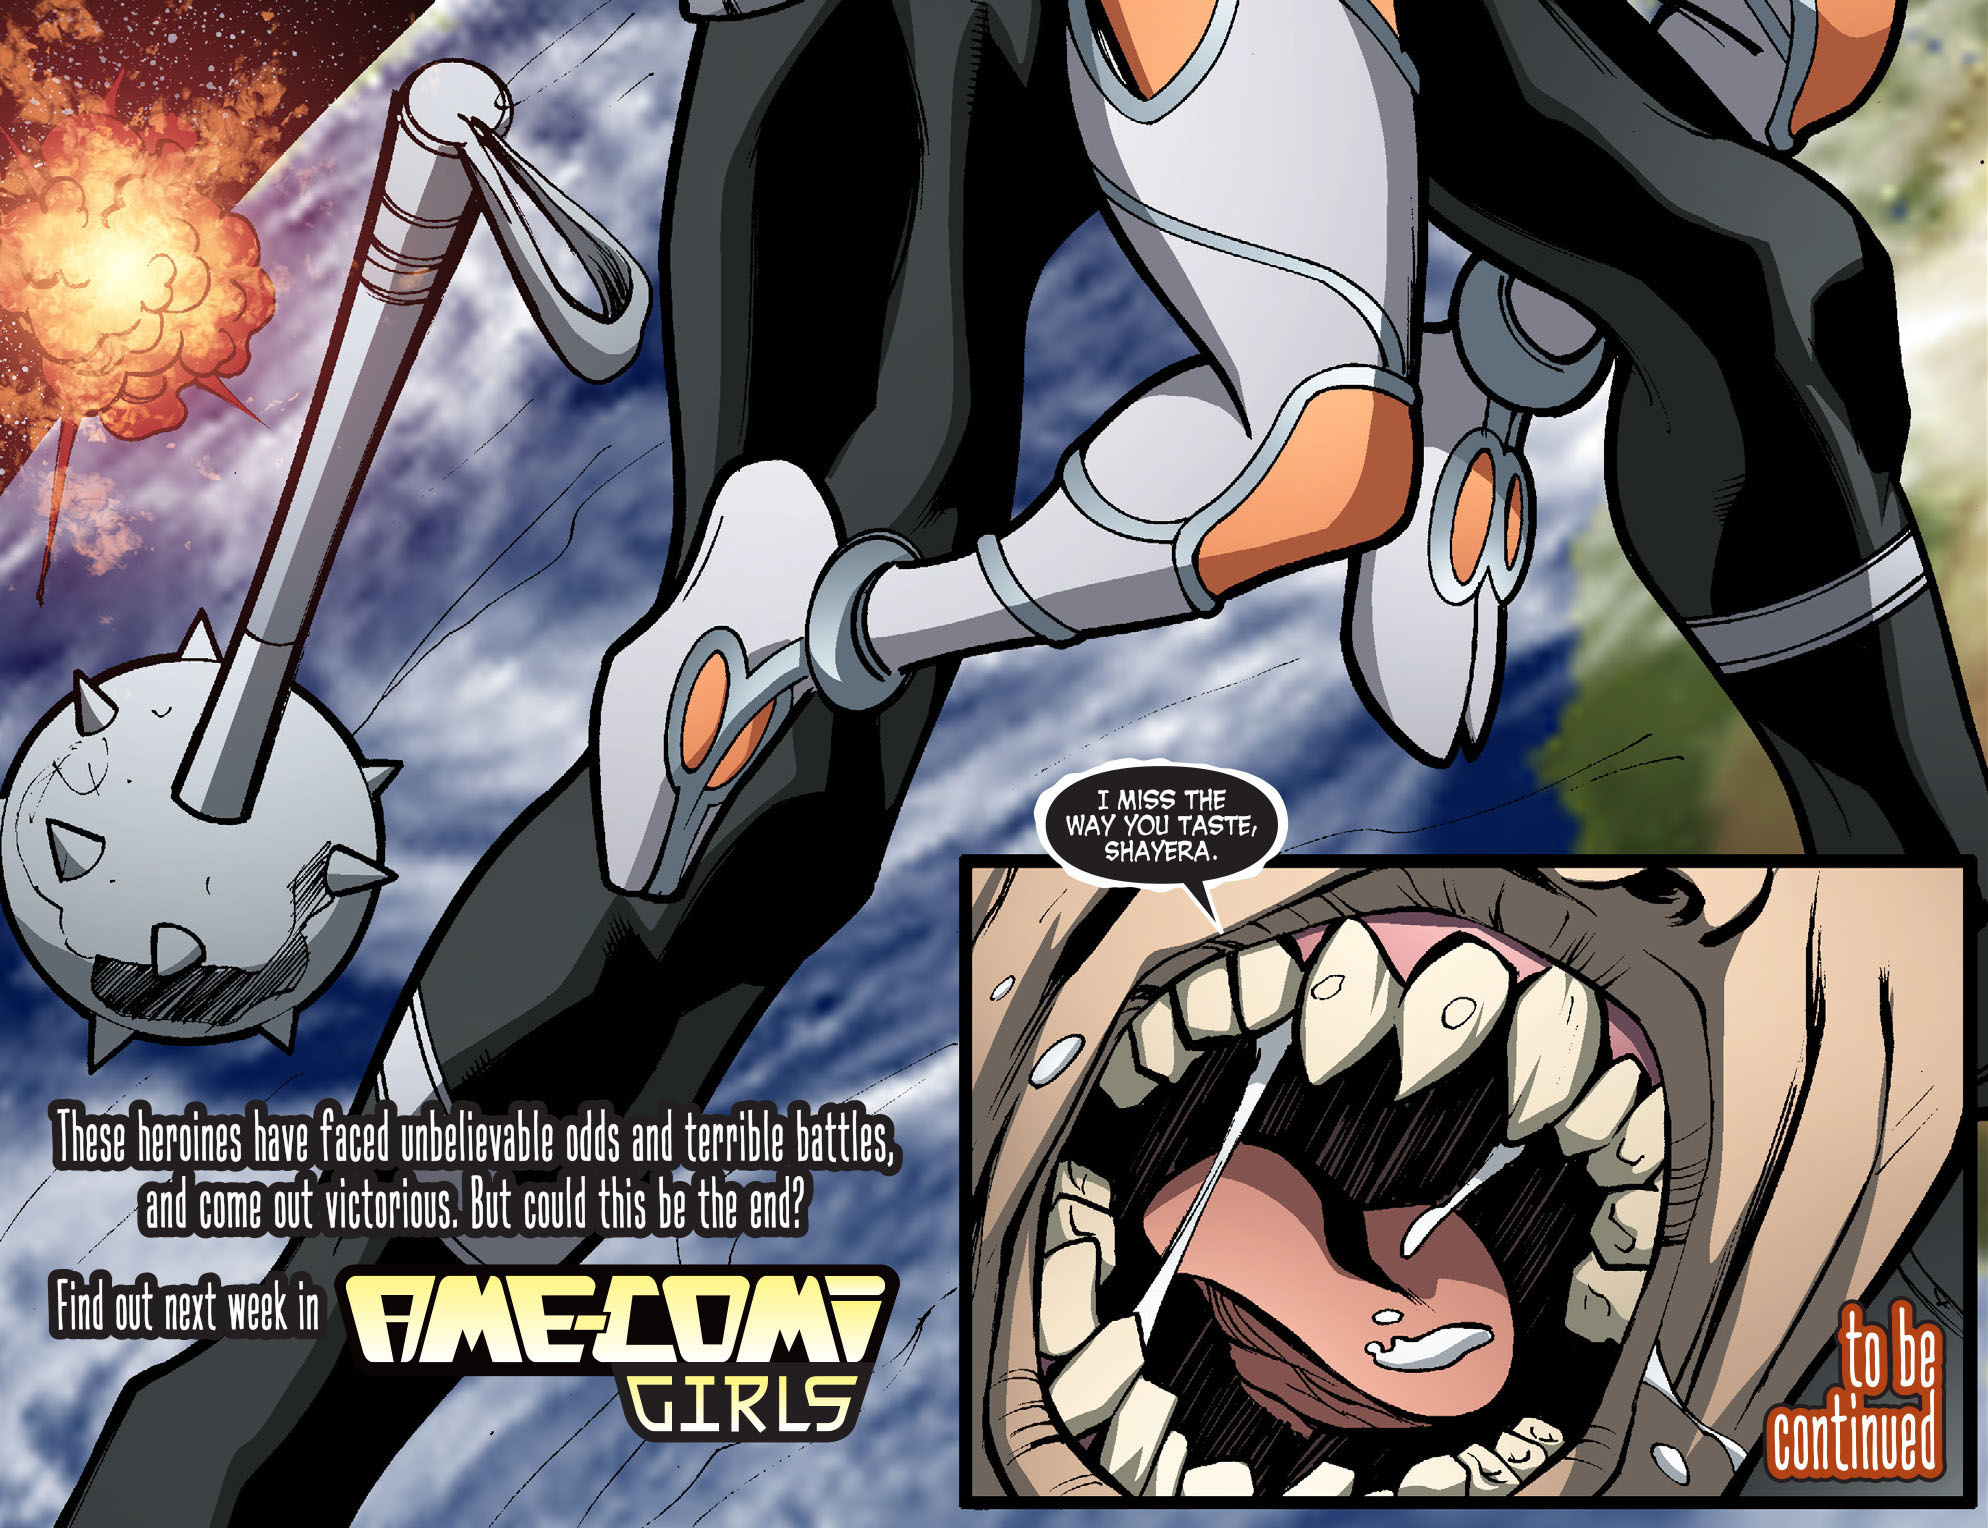 Read online Ame-Comi Girls comic -  Issue #17 - 22